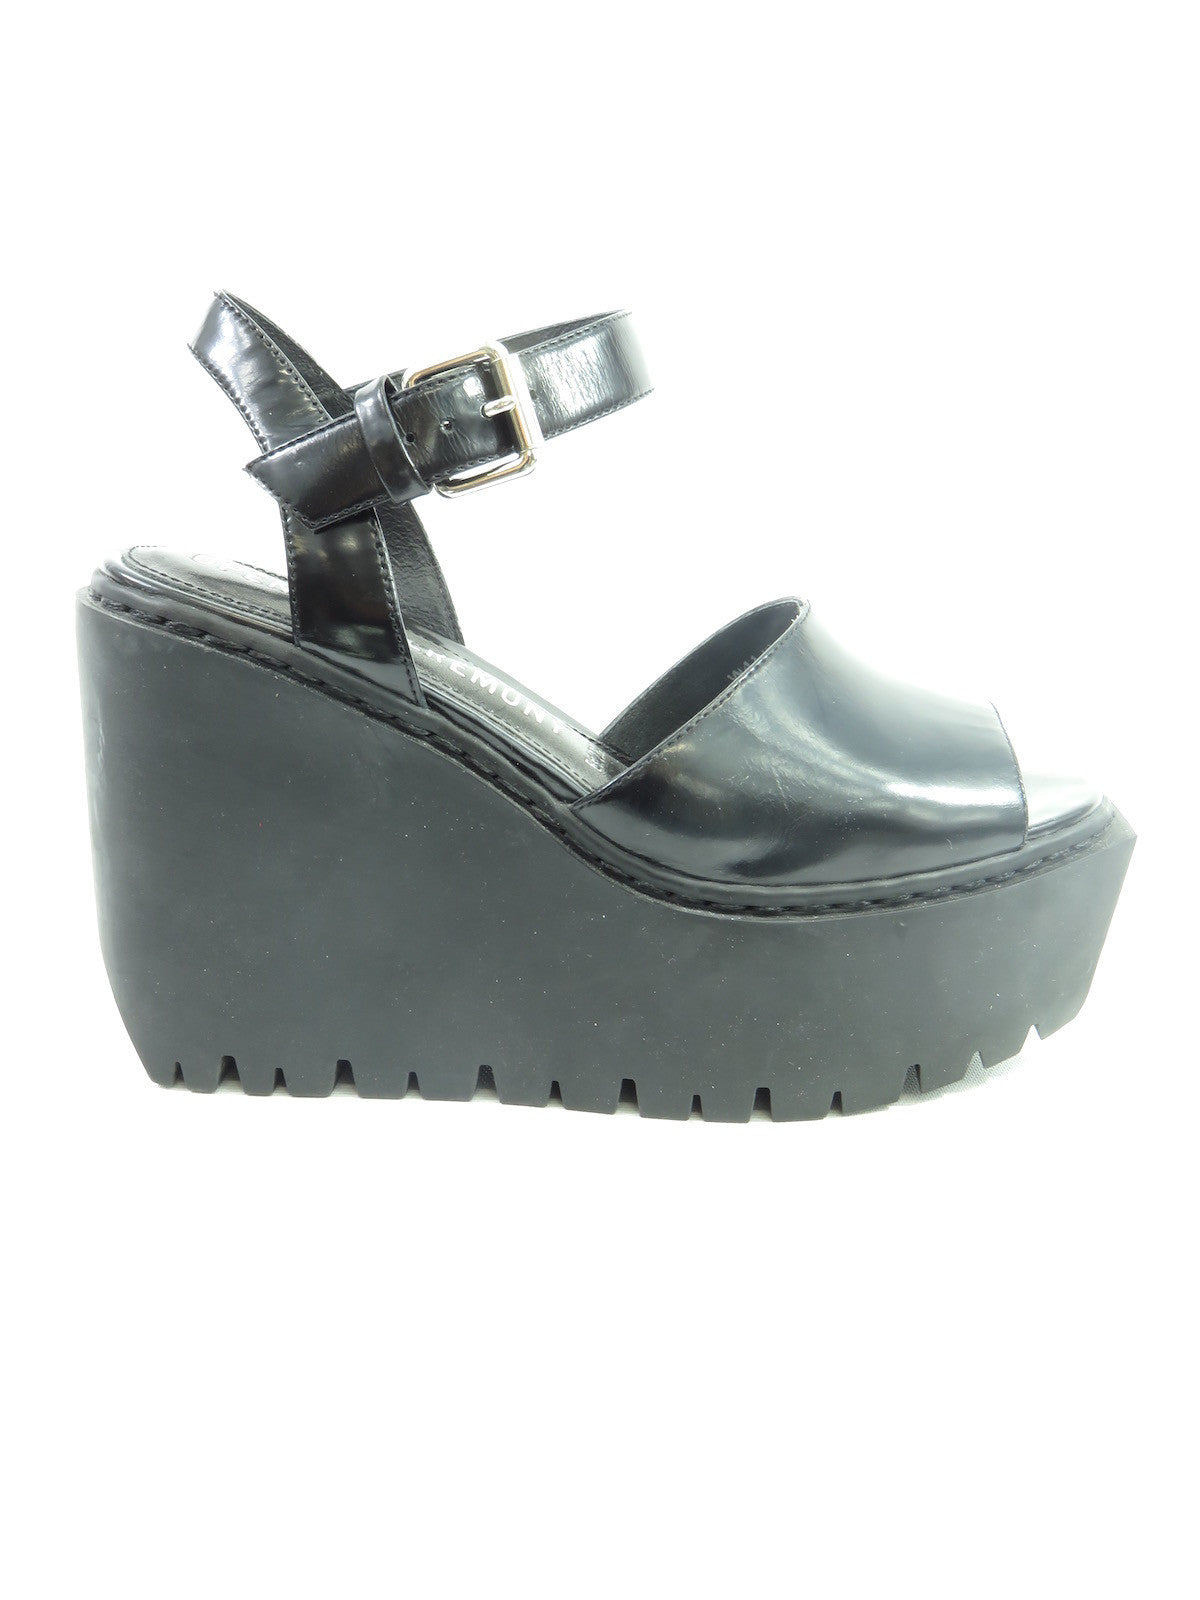 656ed95114f OPENING CEREMONY Women Black Open Toe Ankle Strap Platform Wedge Sandal  Shoes 36. Opening Ceremony Shoes Lorena s WORTH